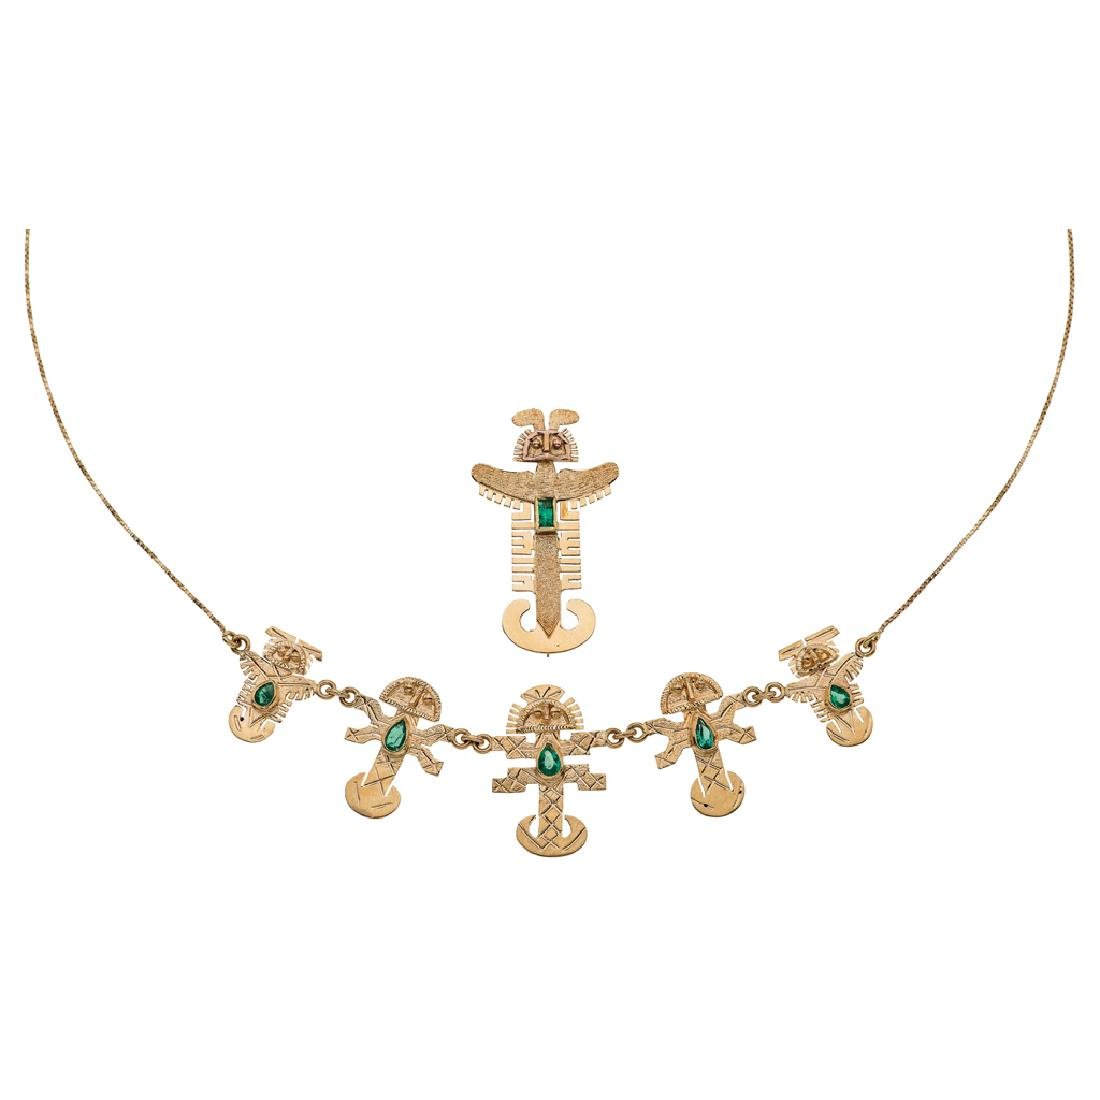 A 14K yellow gold choker and pendant/brooch with 6